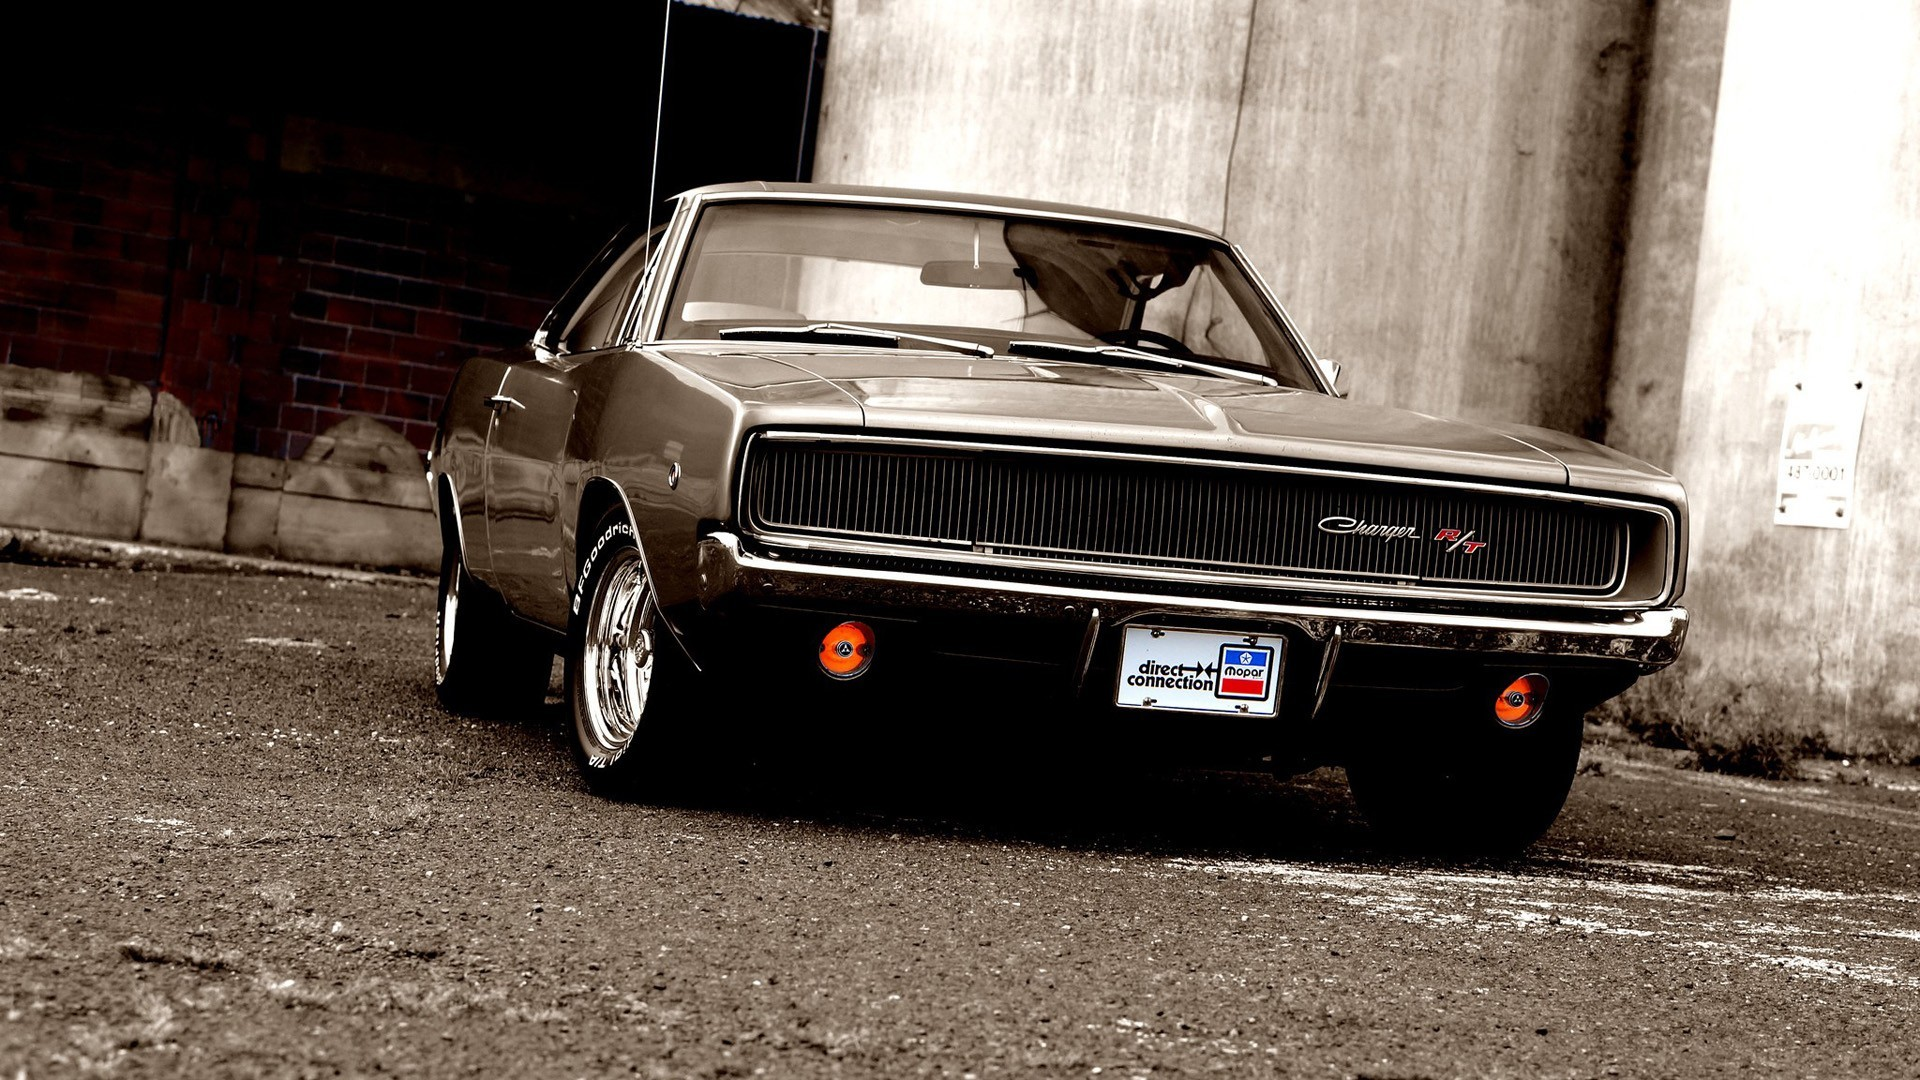 Muscle Car Wallpaper Iphone 6 Mopar Wallpaper 61 Images